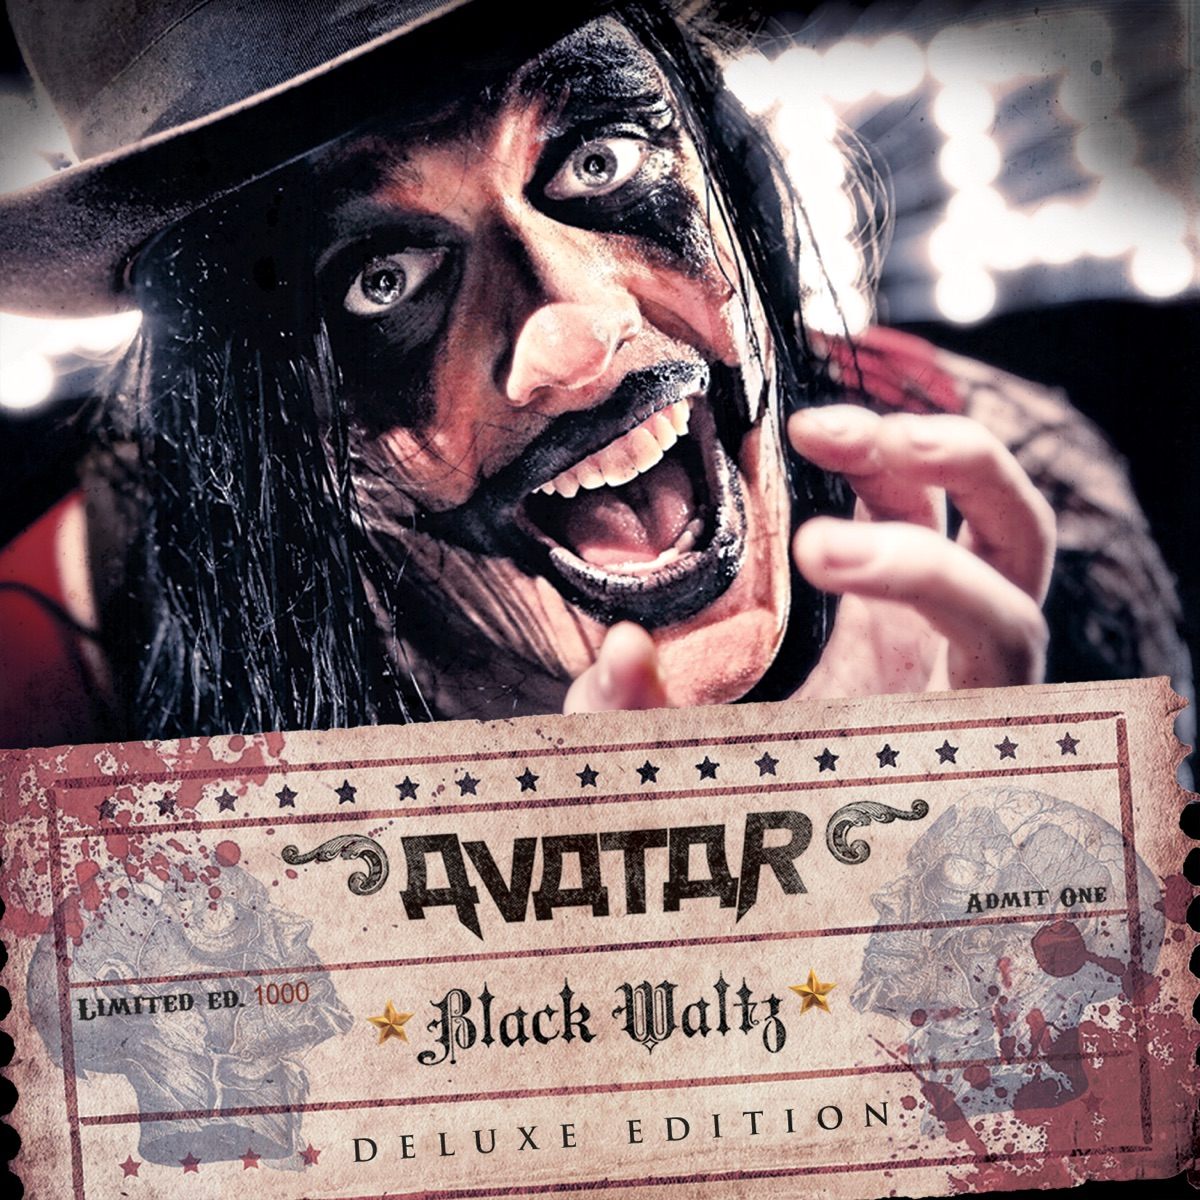 Black Waltz Deluxe Edition Avatar CD cover